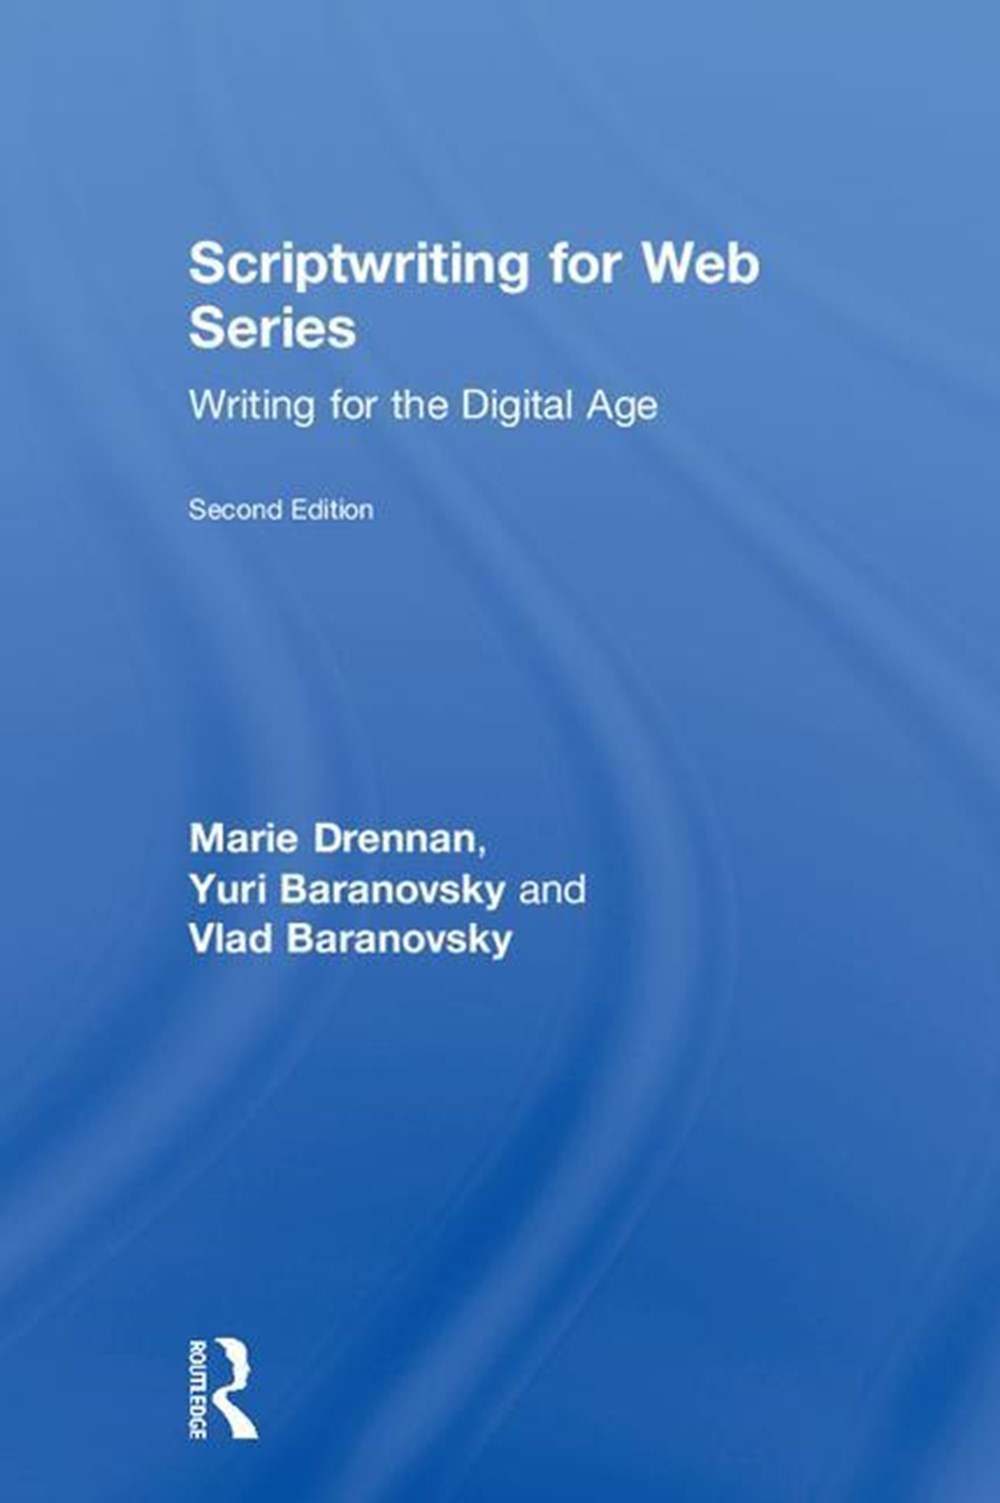 Scriptwriting for Web Series Writing for the Digital Age